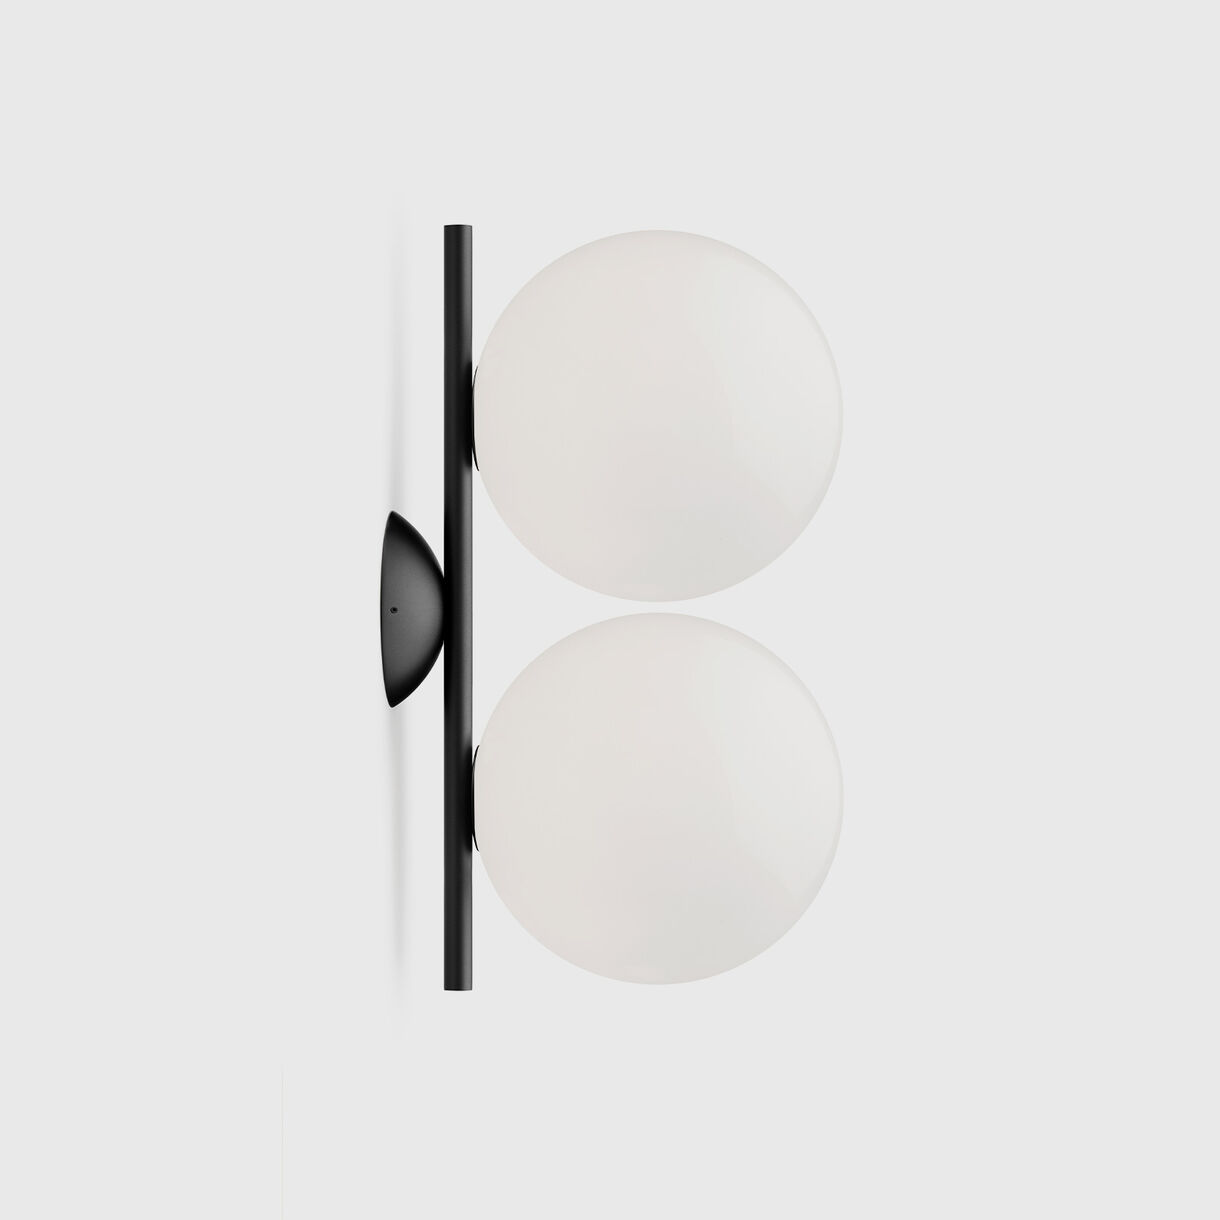 IC Ceiling & Wall Lamp, Small, Black